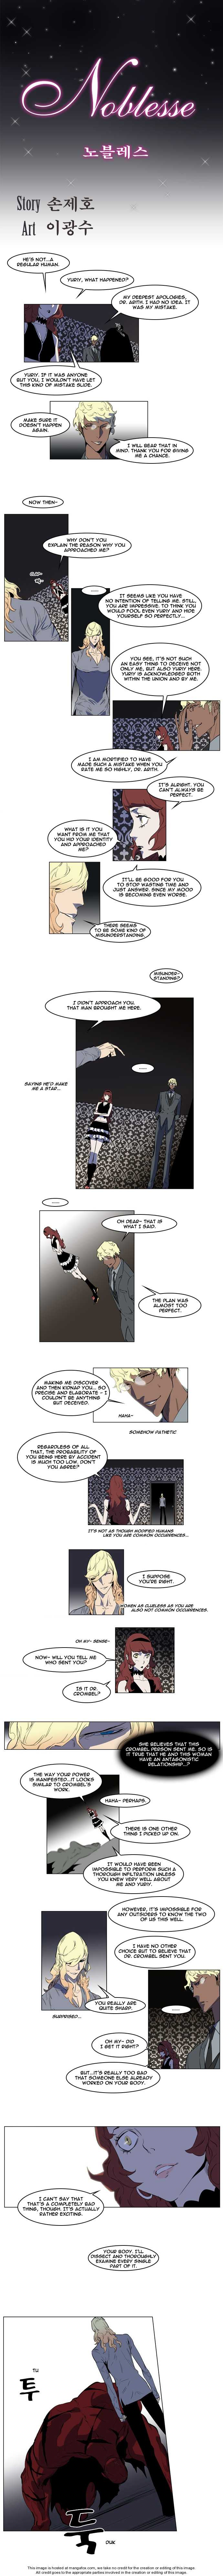 Noblesse 147 Page 1